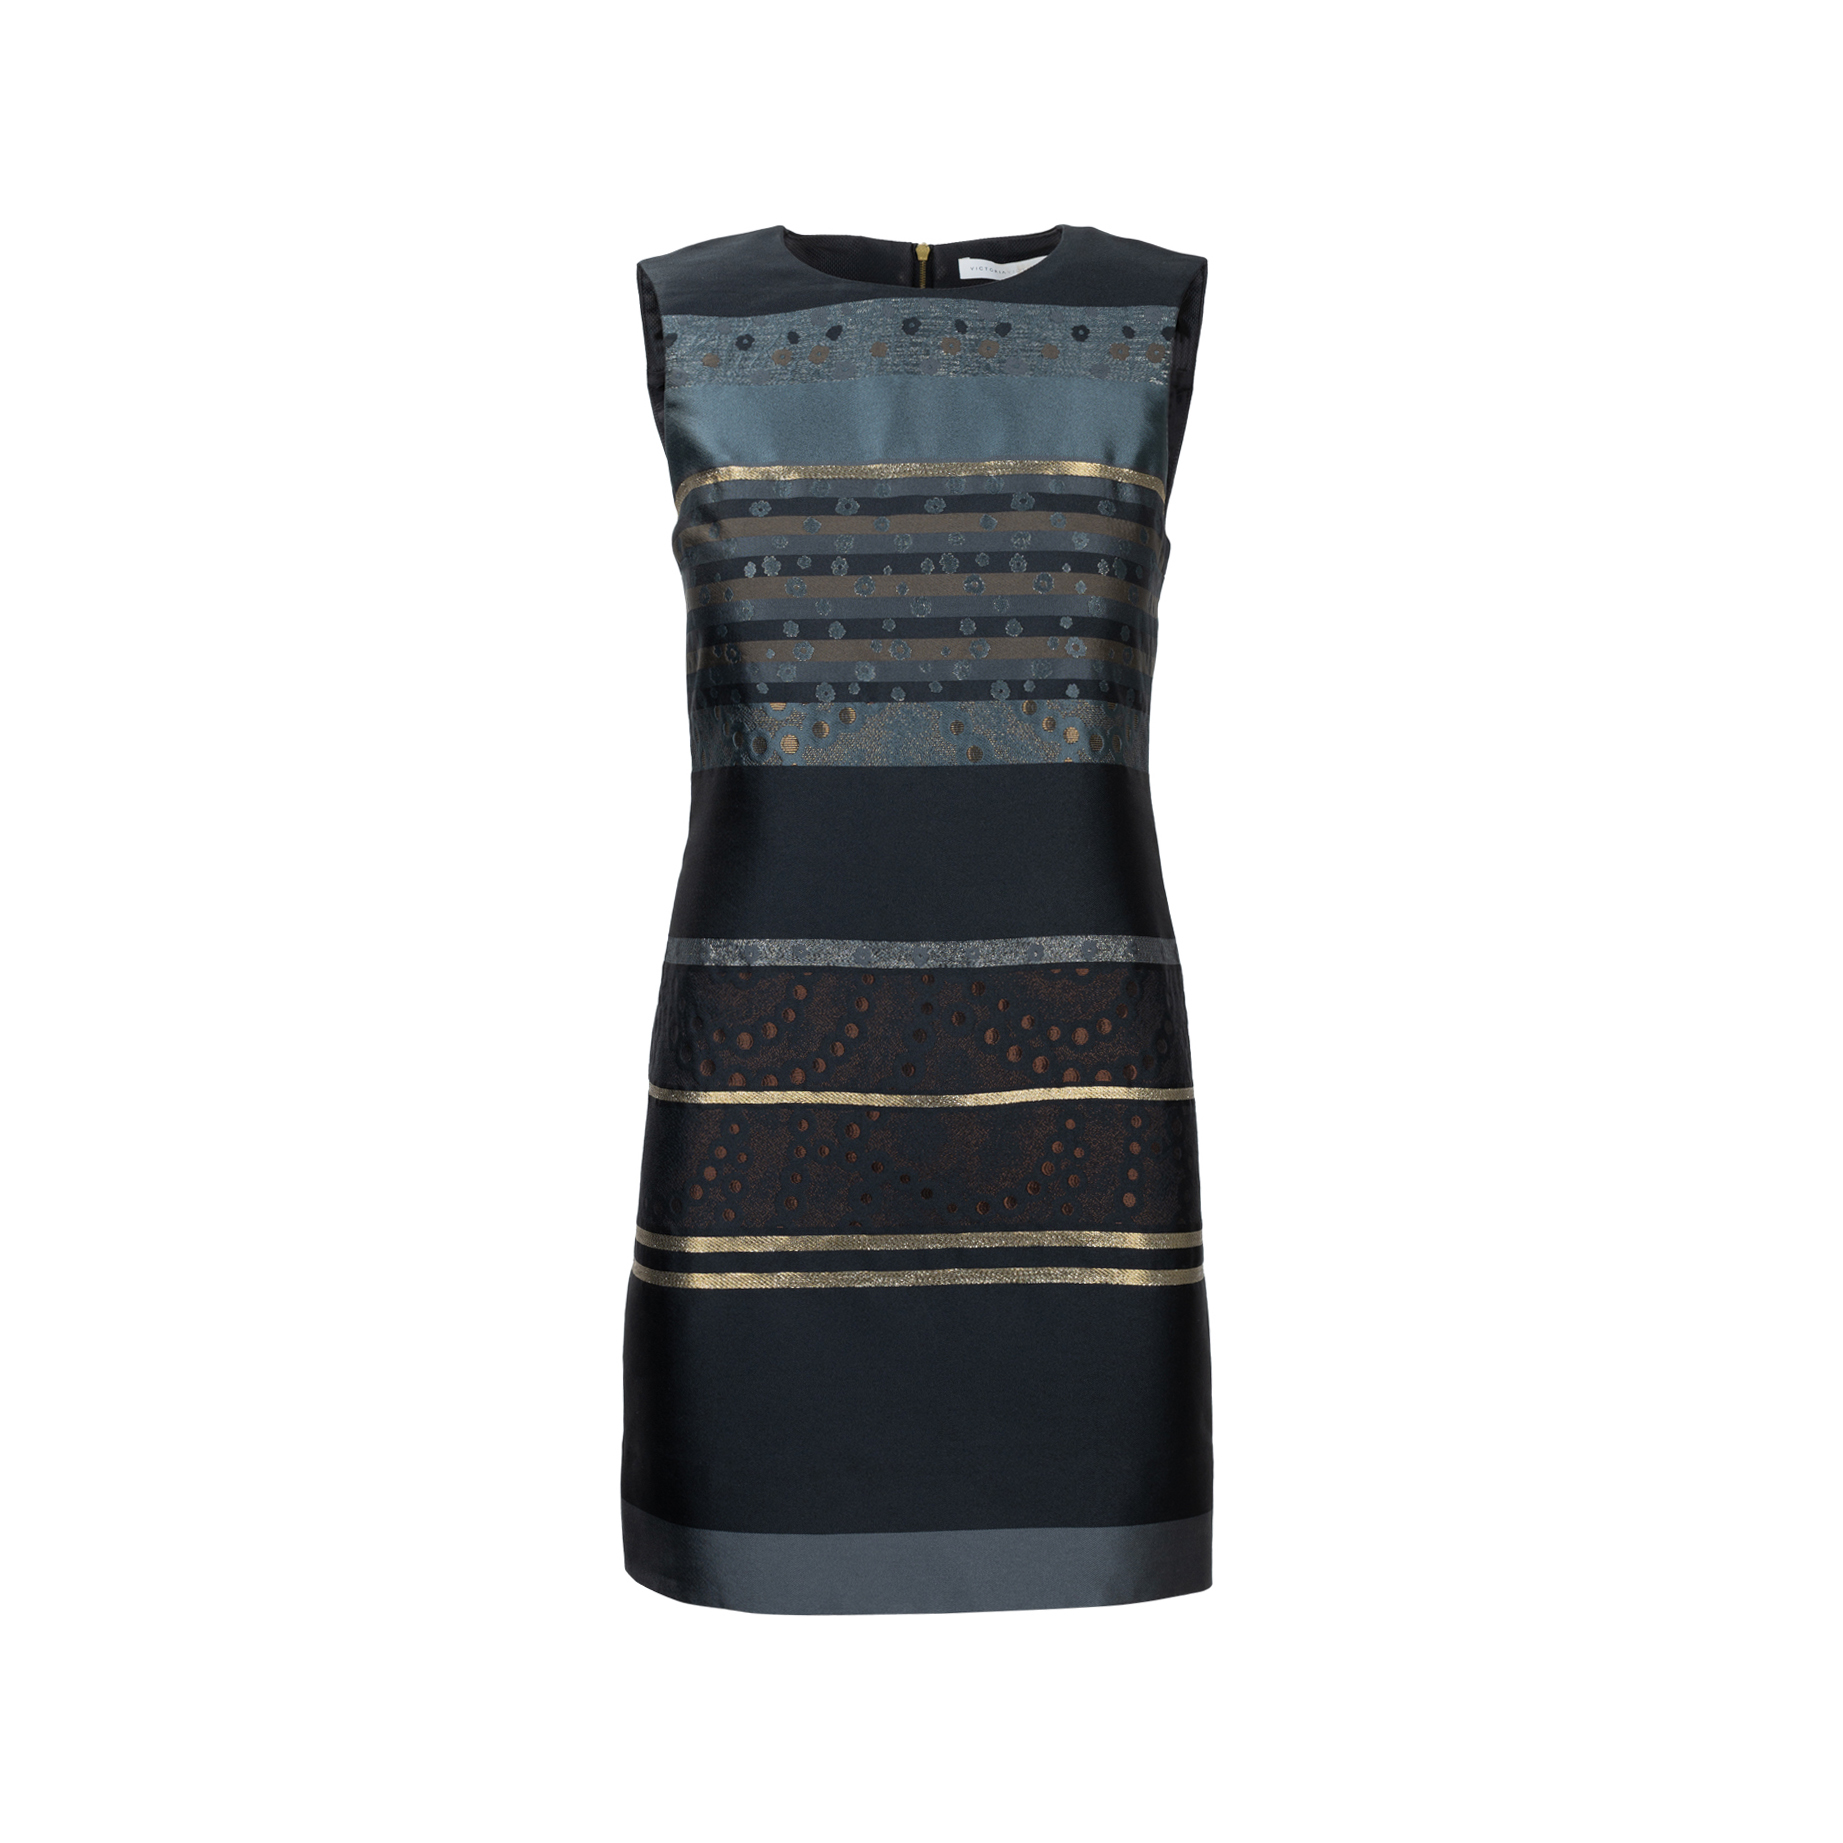 063c4df8f Authentic Second Hand Victoria Victoria Beckham Embroidered Shift Dress  (PSS-565-00001) - THE FIFTH COLLECTION